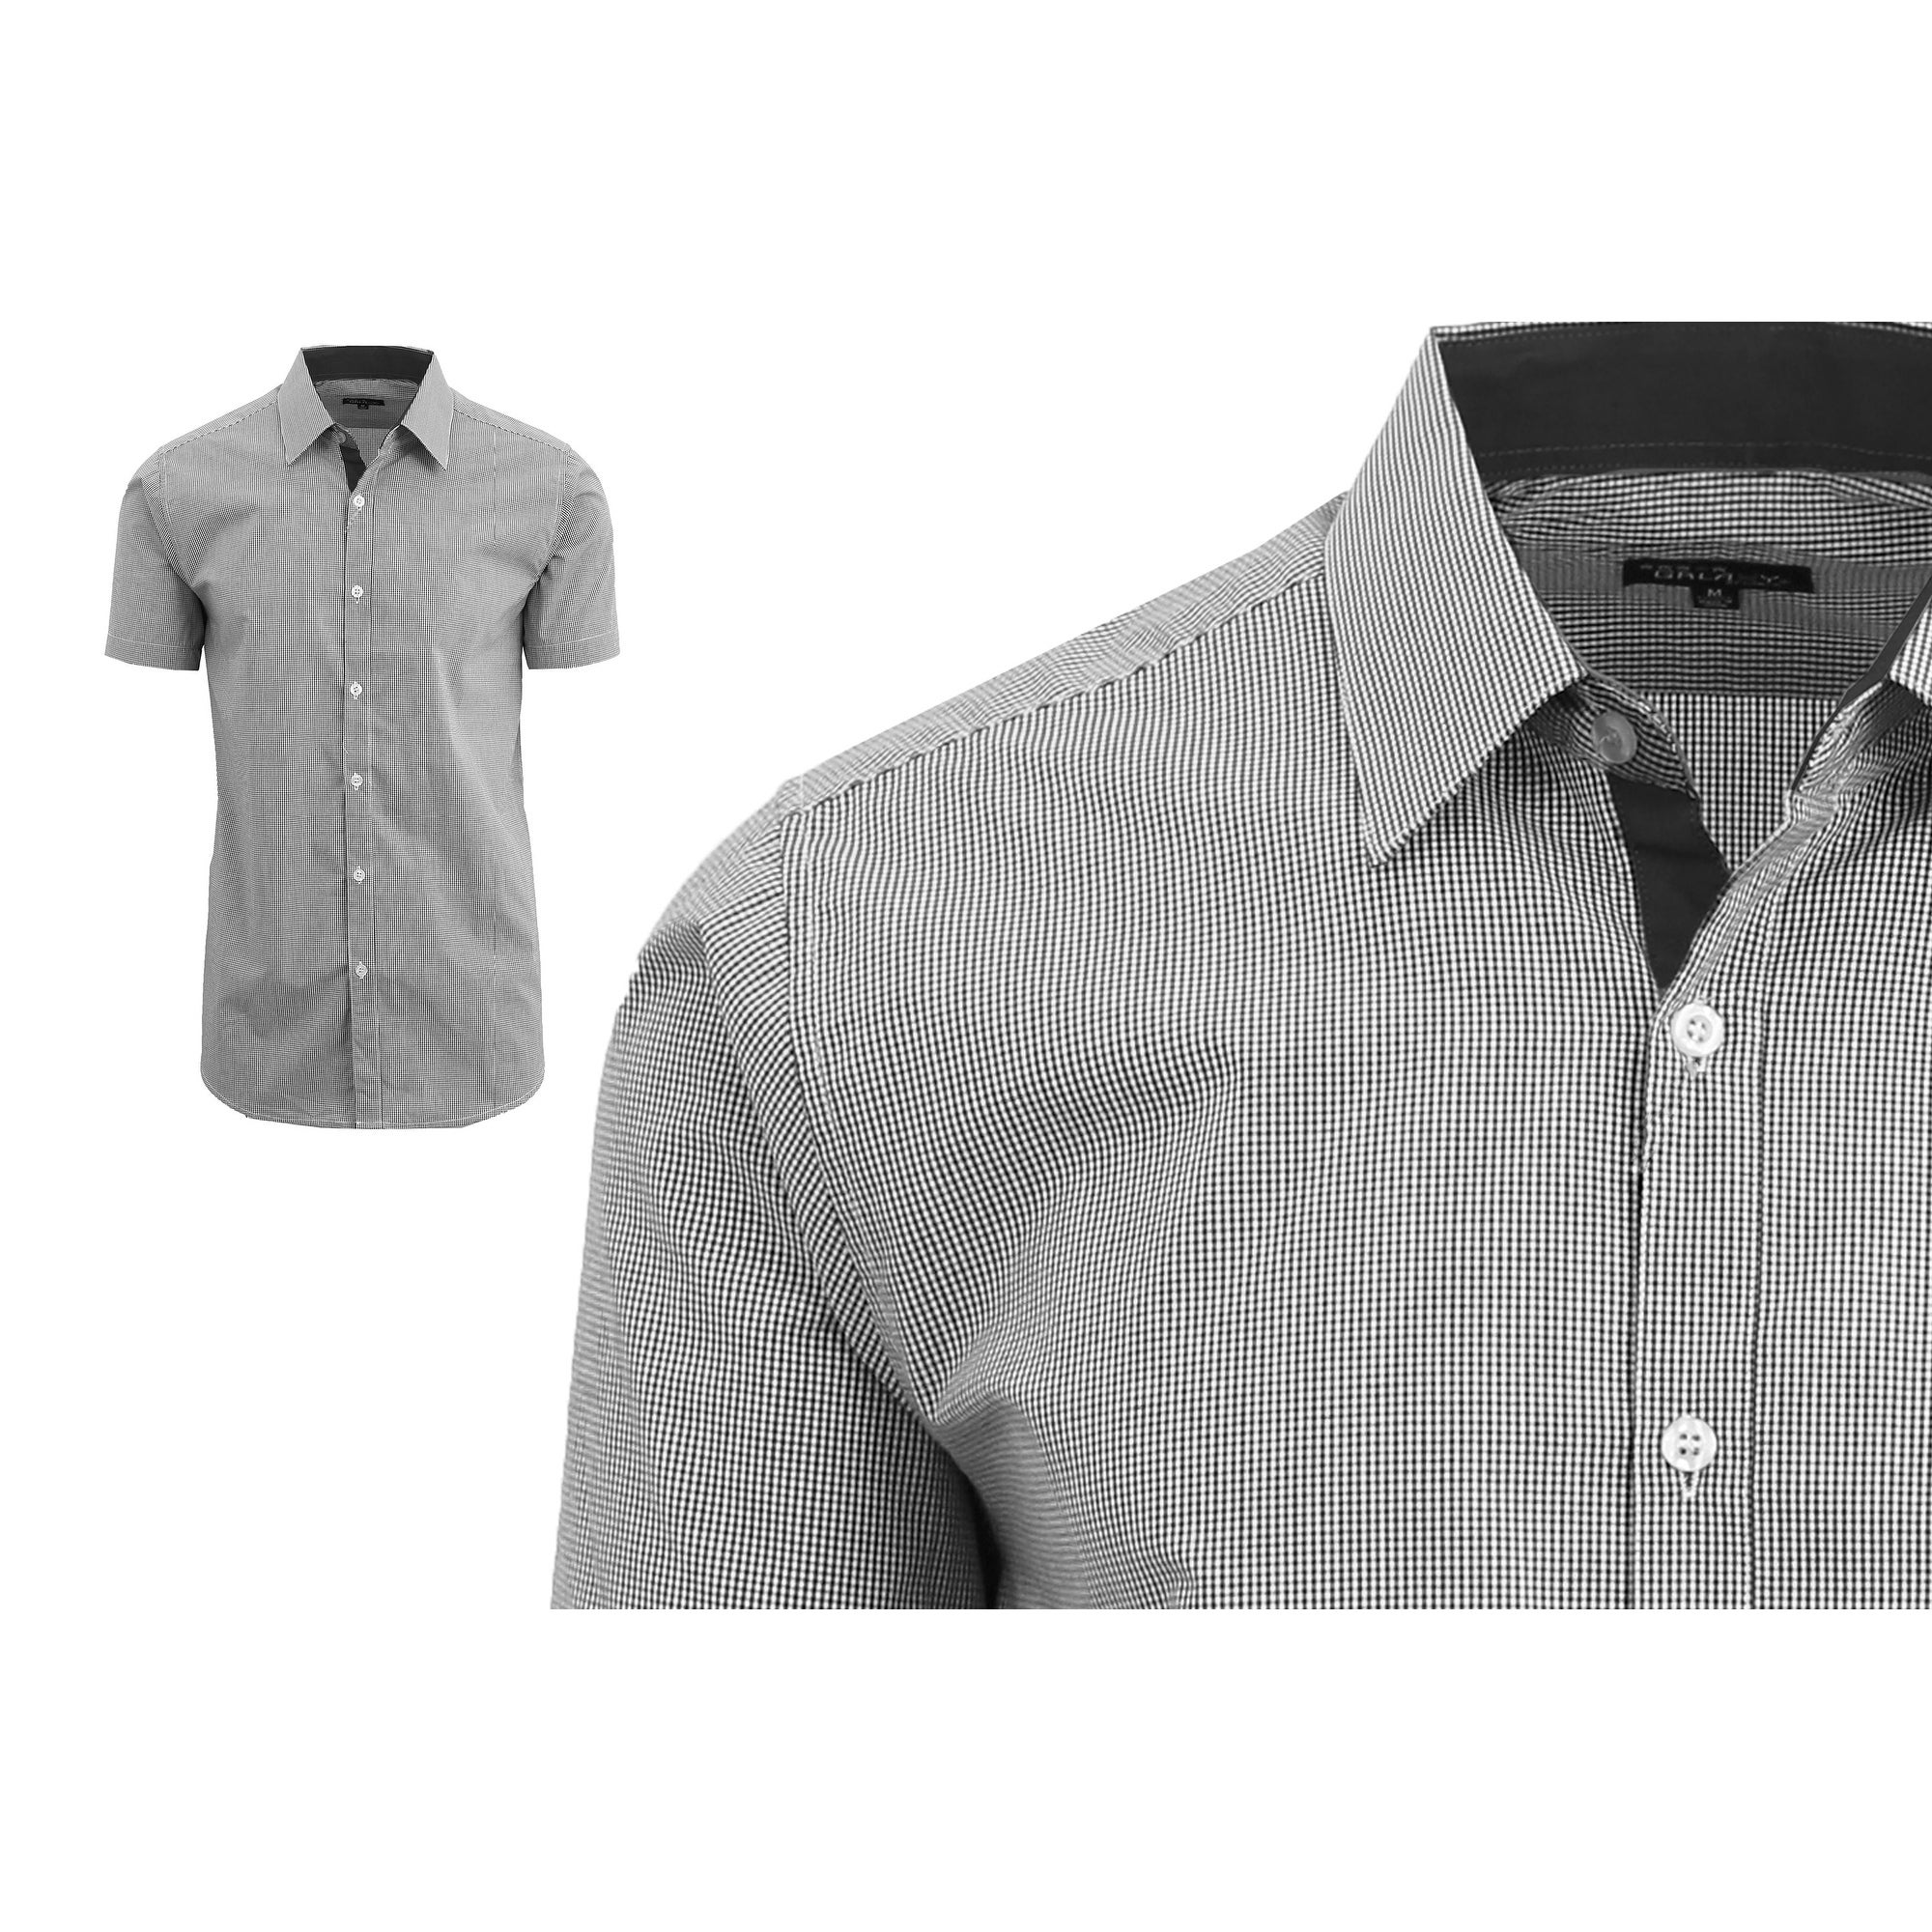 Mens Dress Shirts Patterned Cuffs Chad Crowley Productions